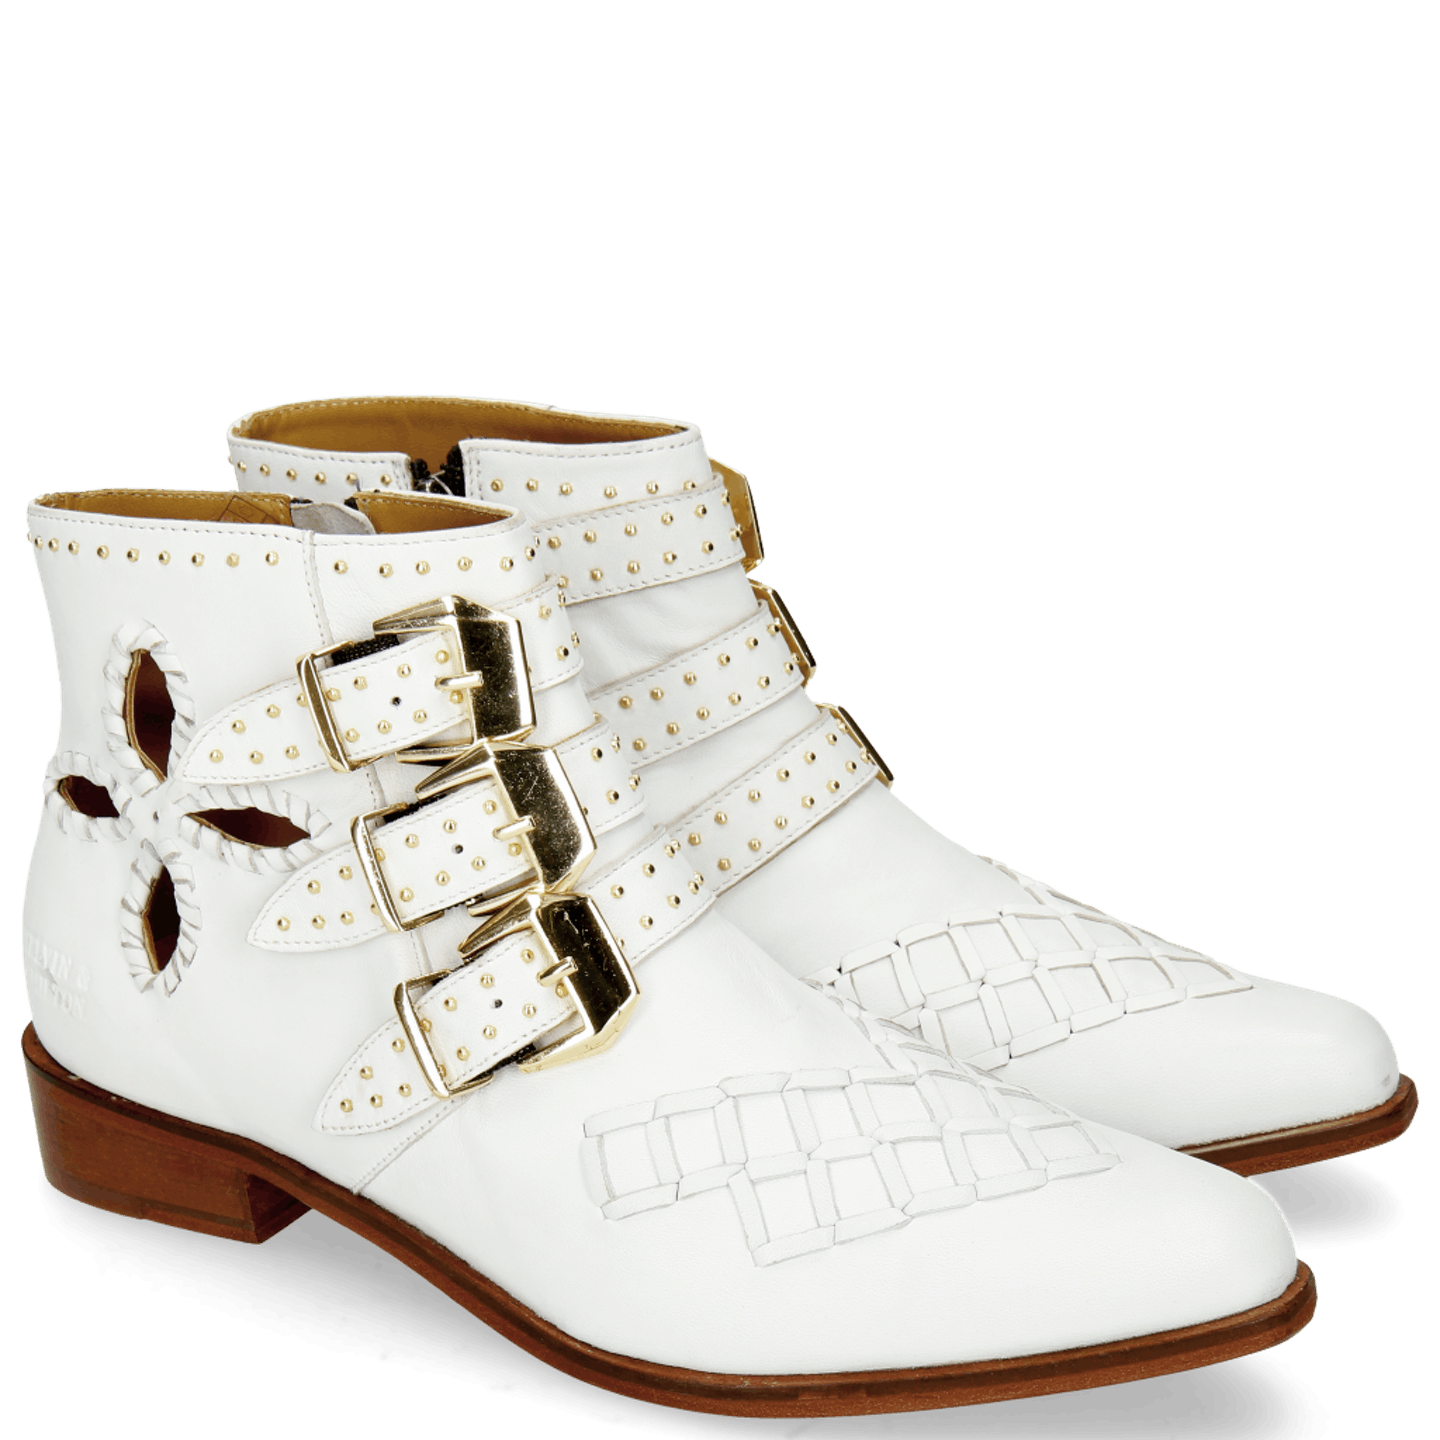 Marlin 28 Nappa White Rivets Gold